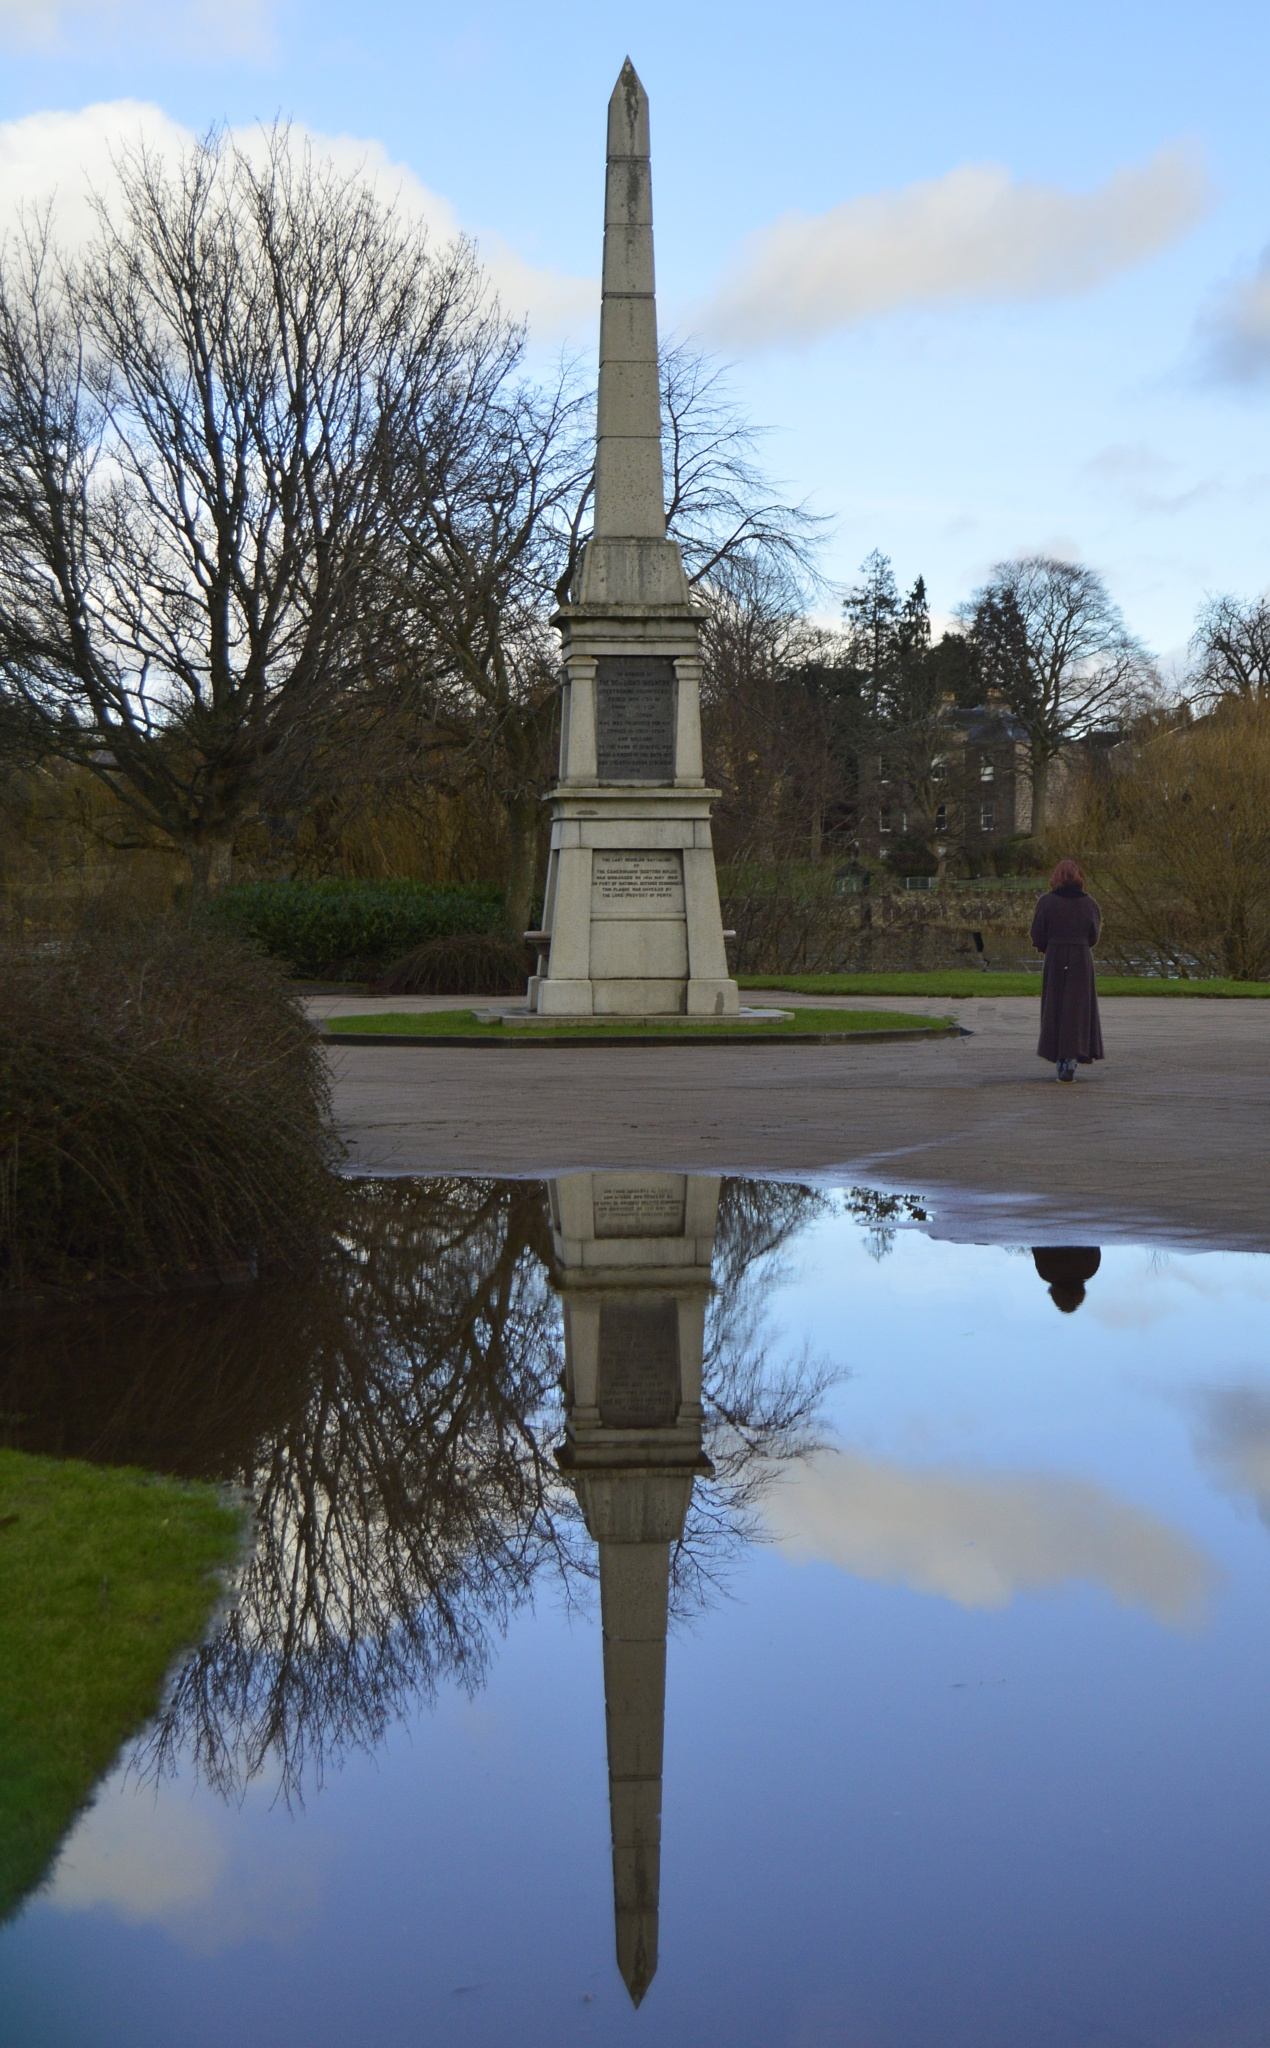 Reflection in a puddle by John White